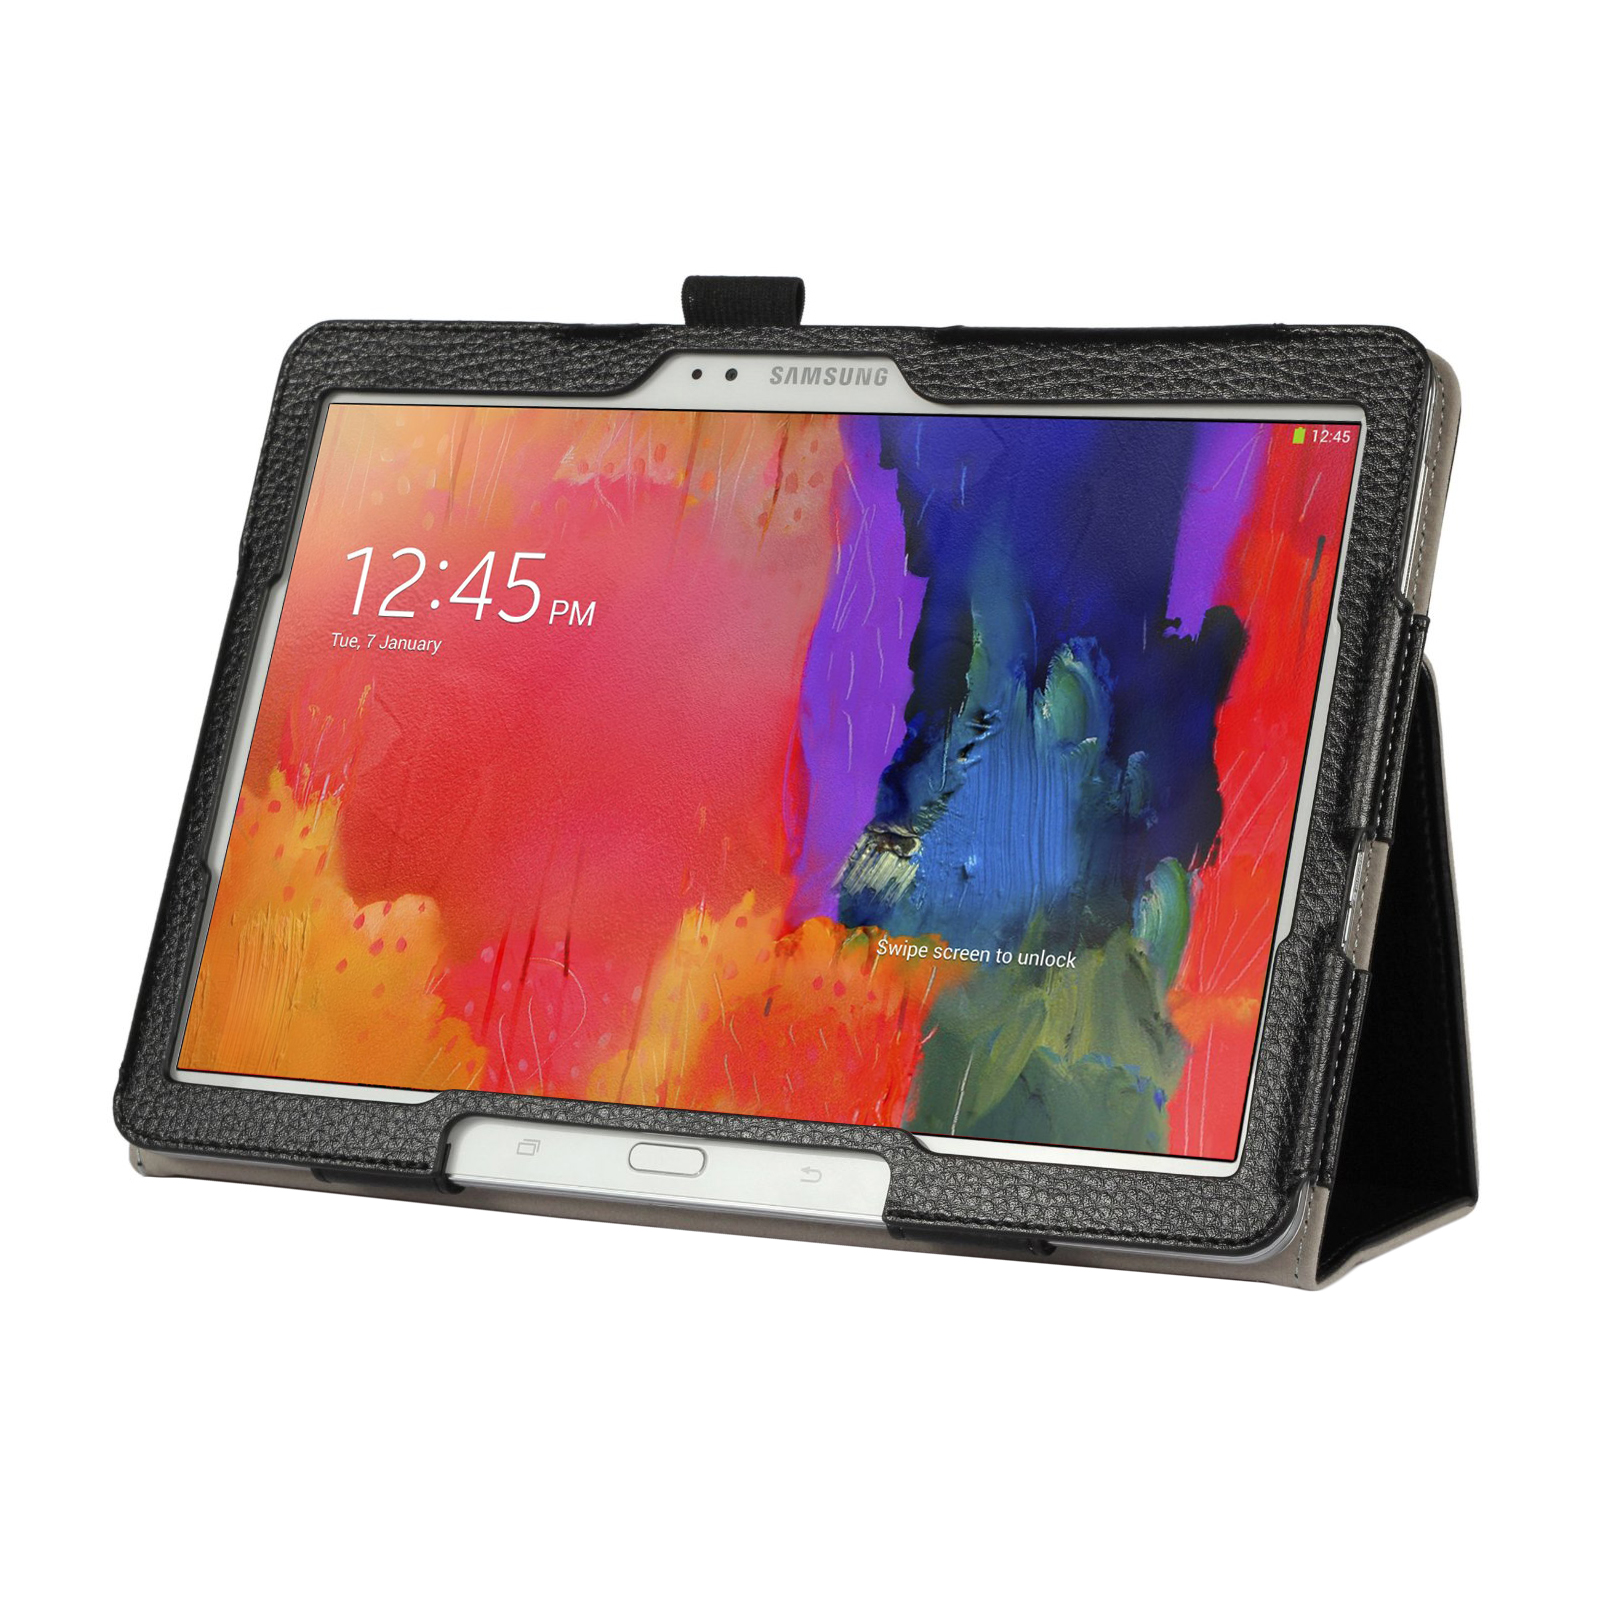 "Black Double-Fold Folio Case for Samsung Galaxy Tab Pro 10.1"" Tablet"